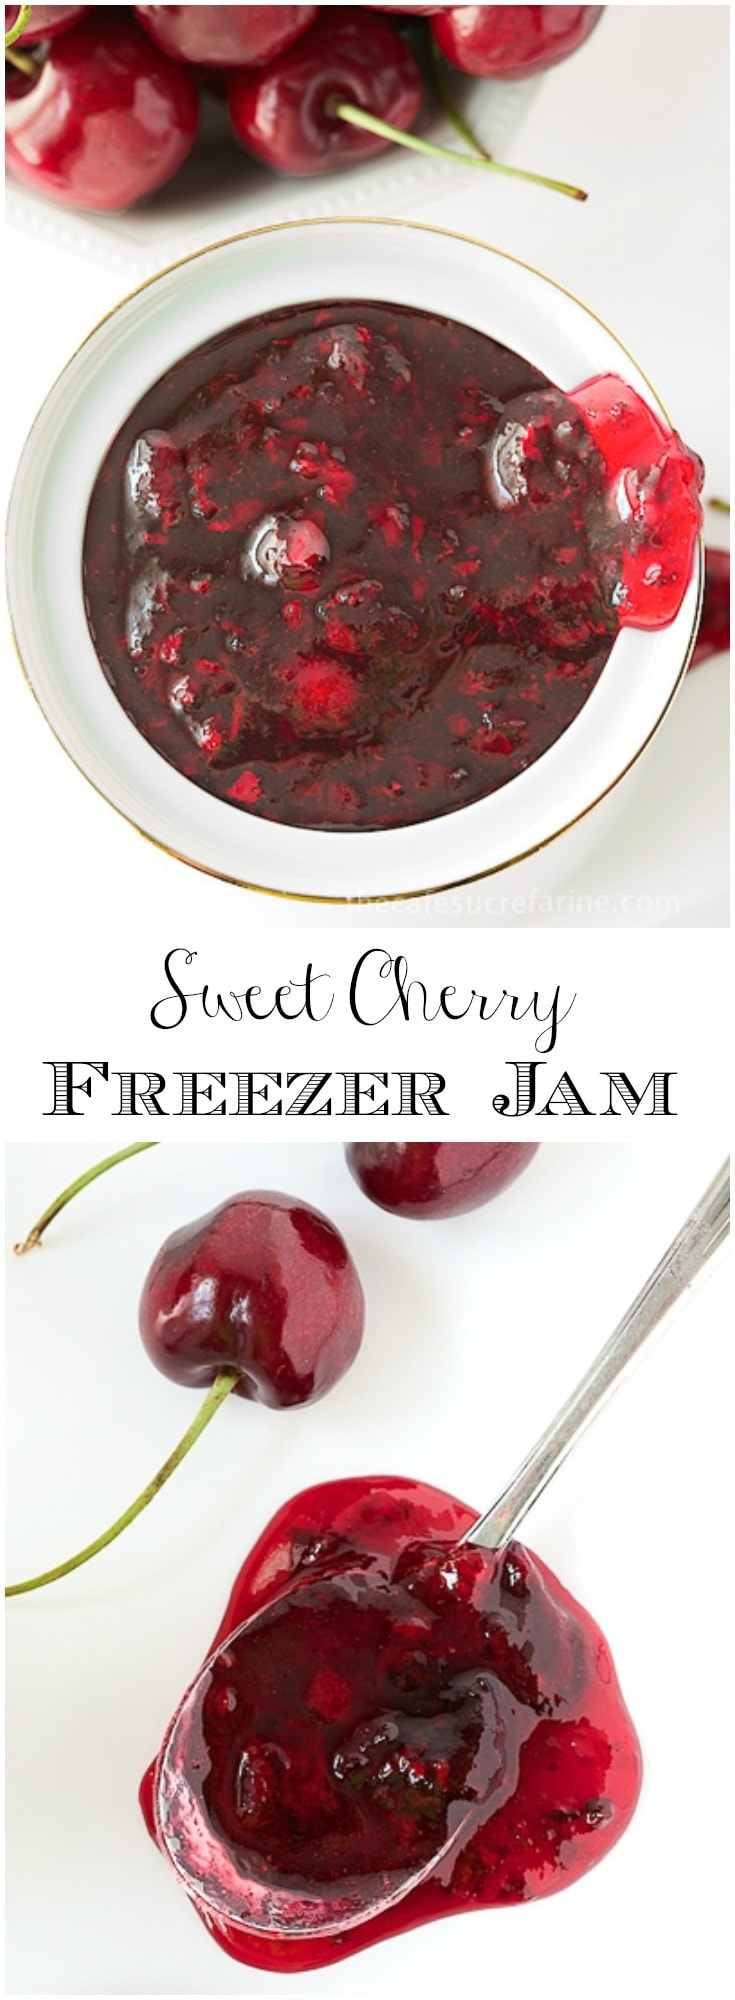 Just 30 minutes for a delicious taste of fresh cherries all year long! Sweet Cherry Freezer Jam is super easy and there are no canning skills needed!